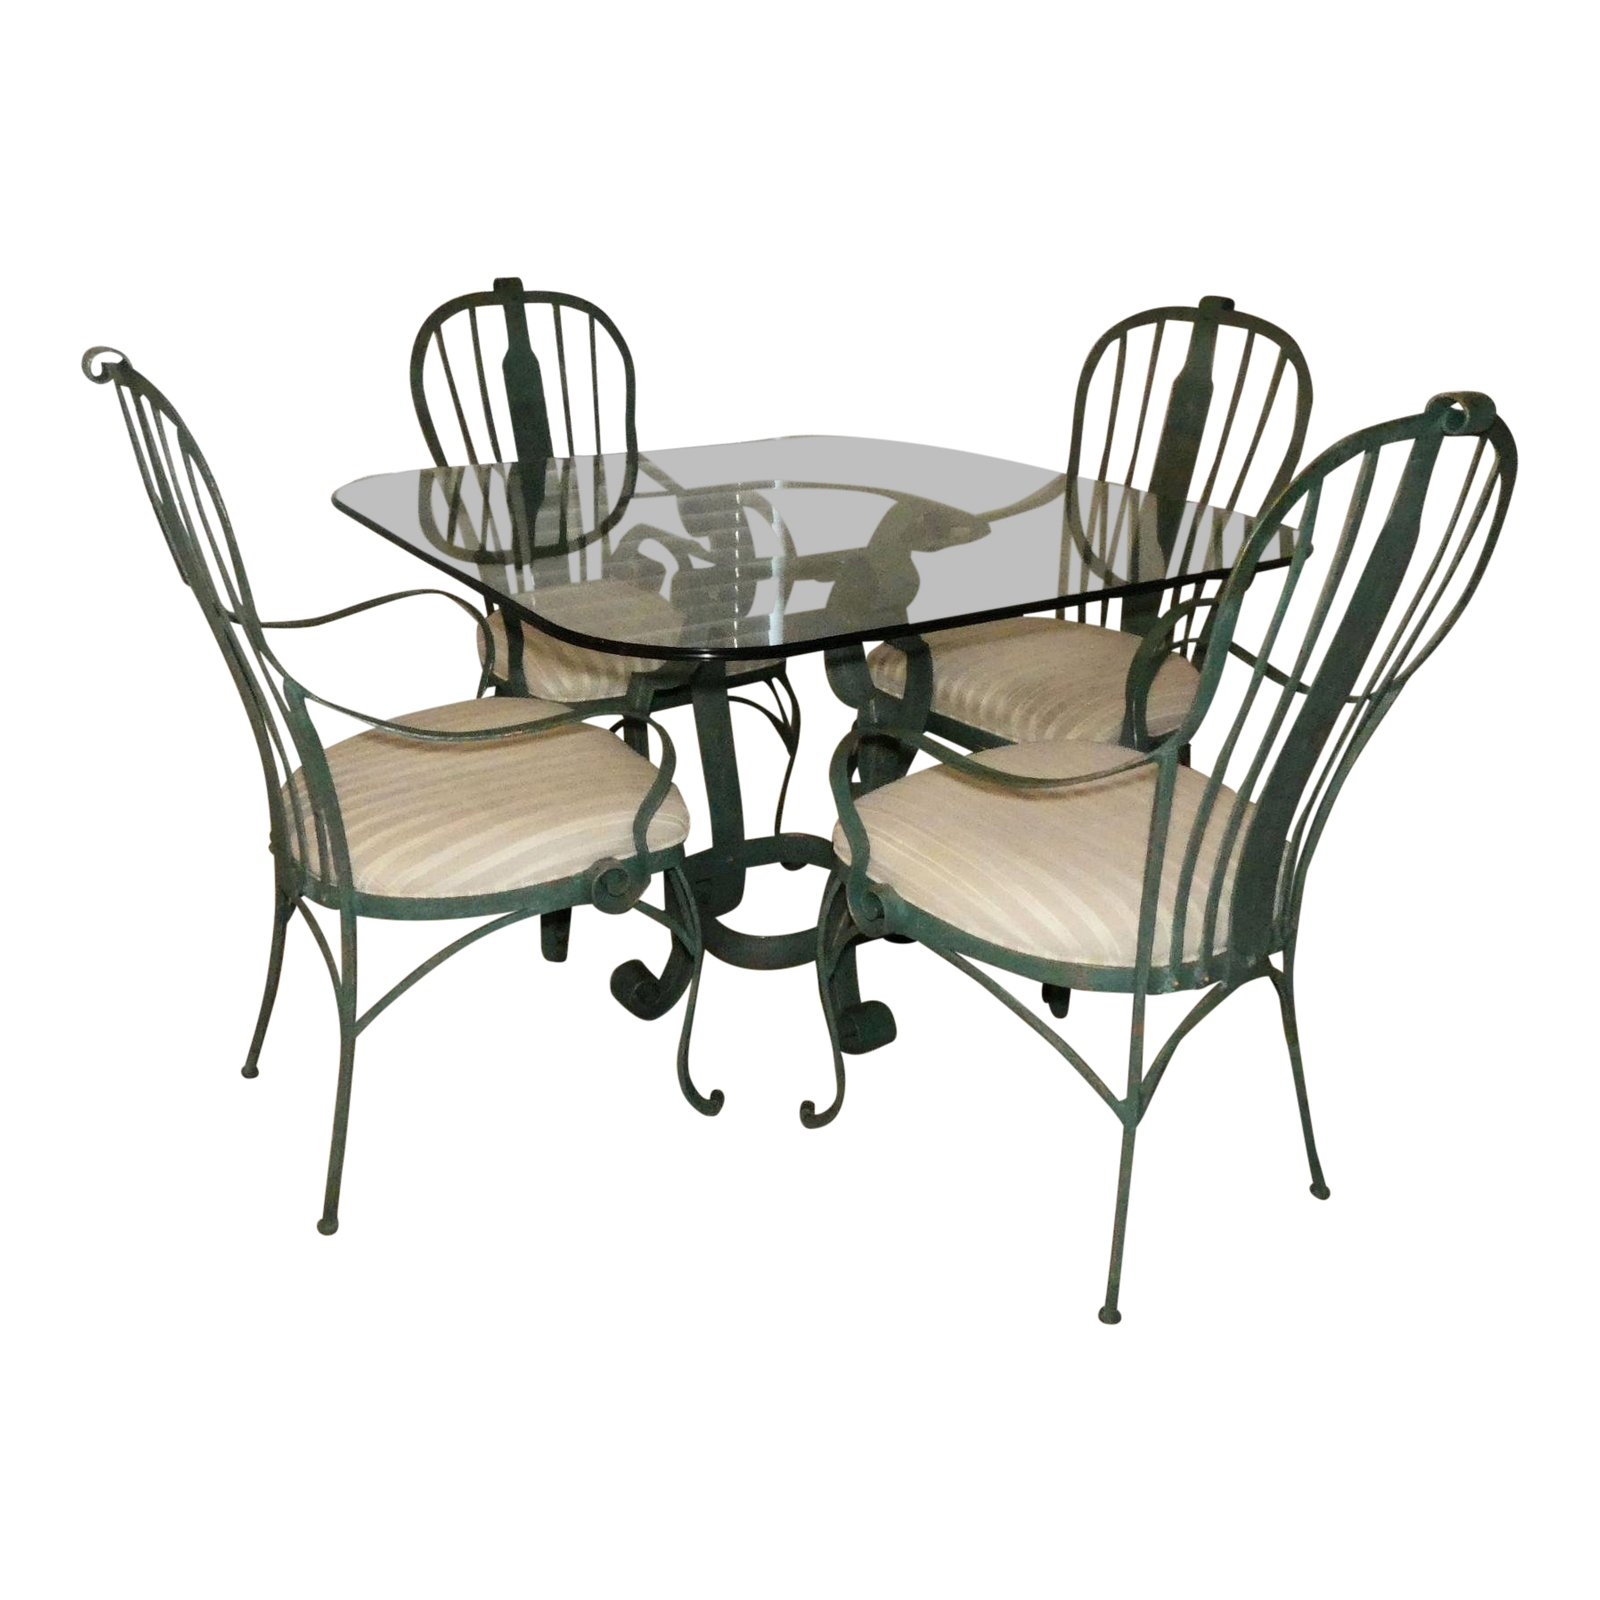 SOLD Hooker Furniture Verdigris Wrought Iron Dining Se